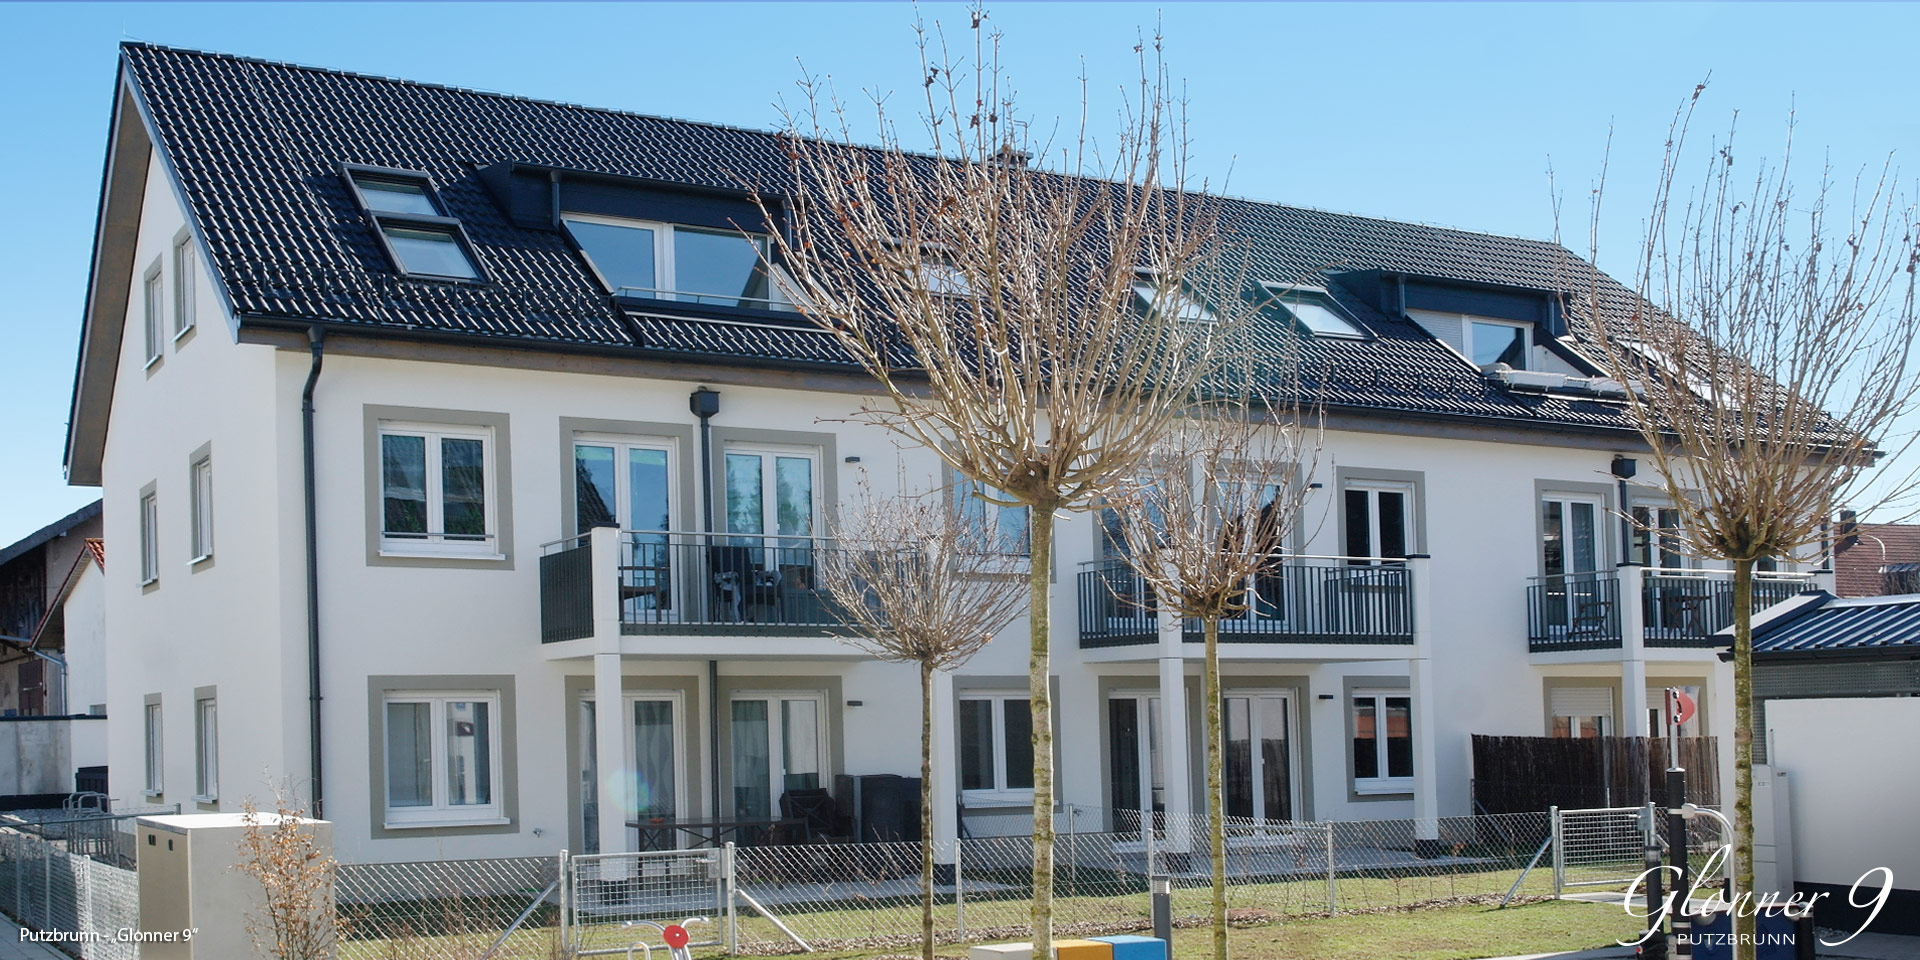 'Glonner 9' in Putzbrunn: All condominiums and townhouses have been sold